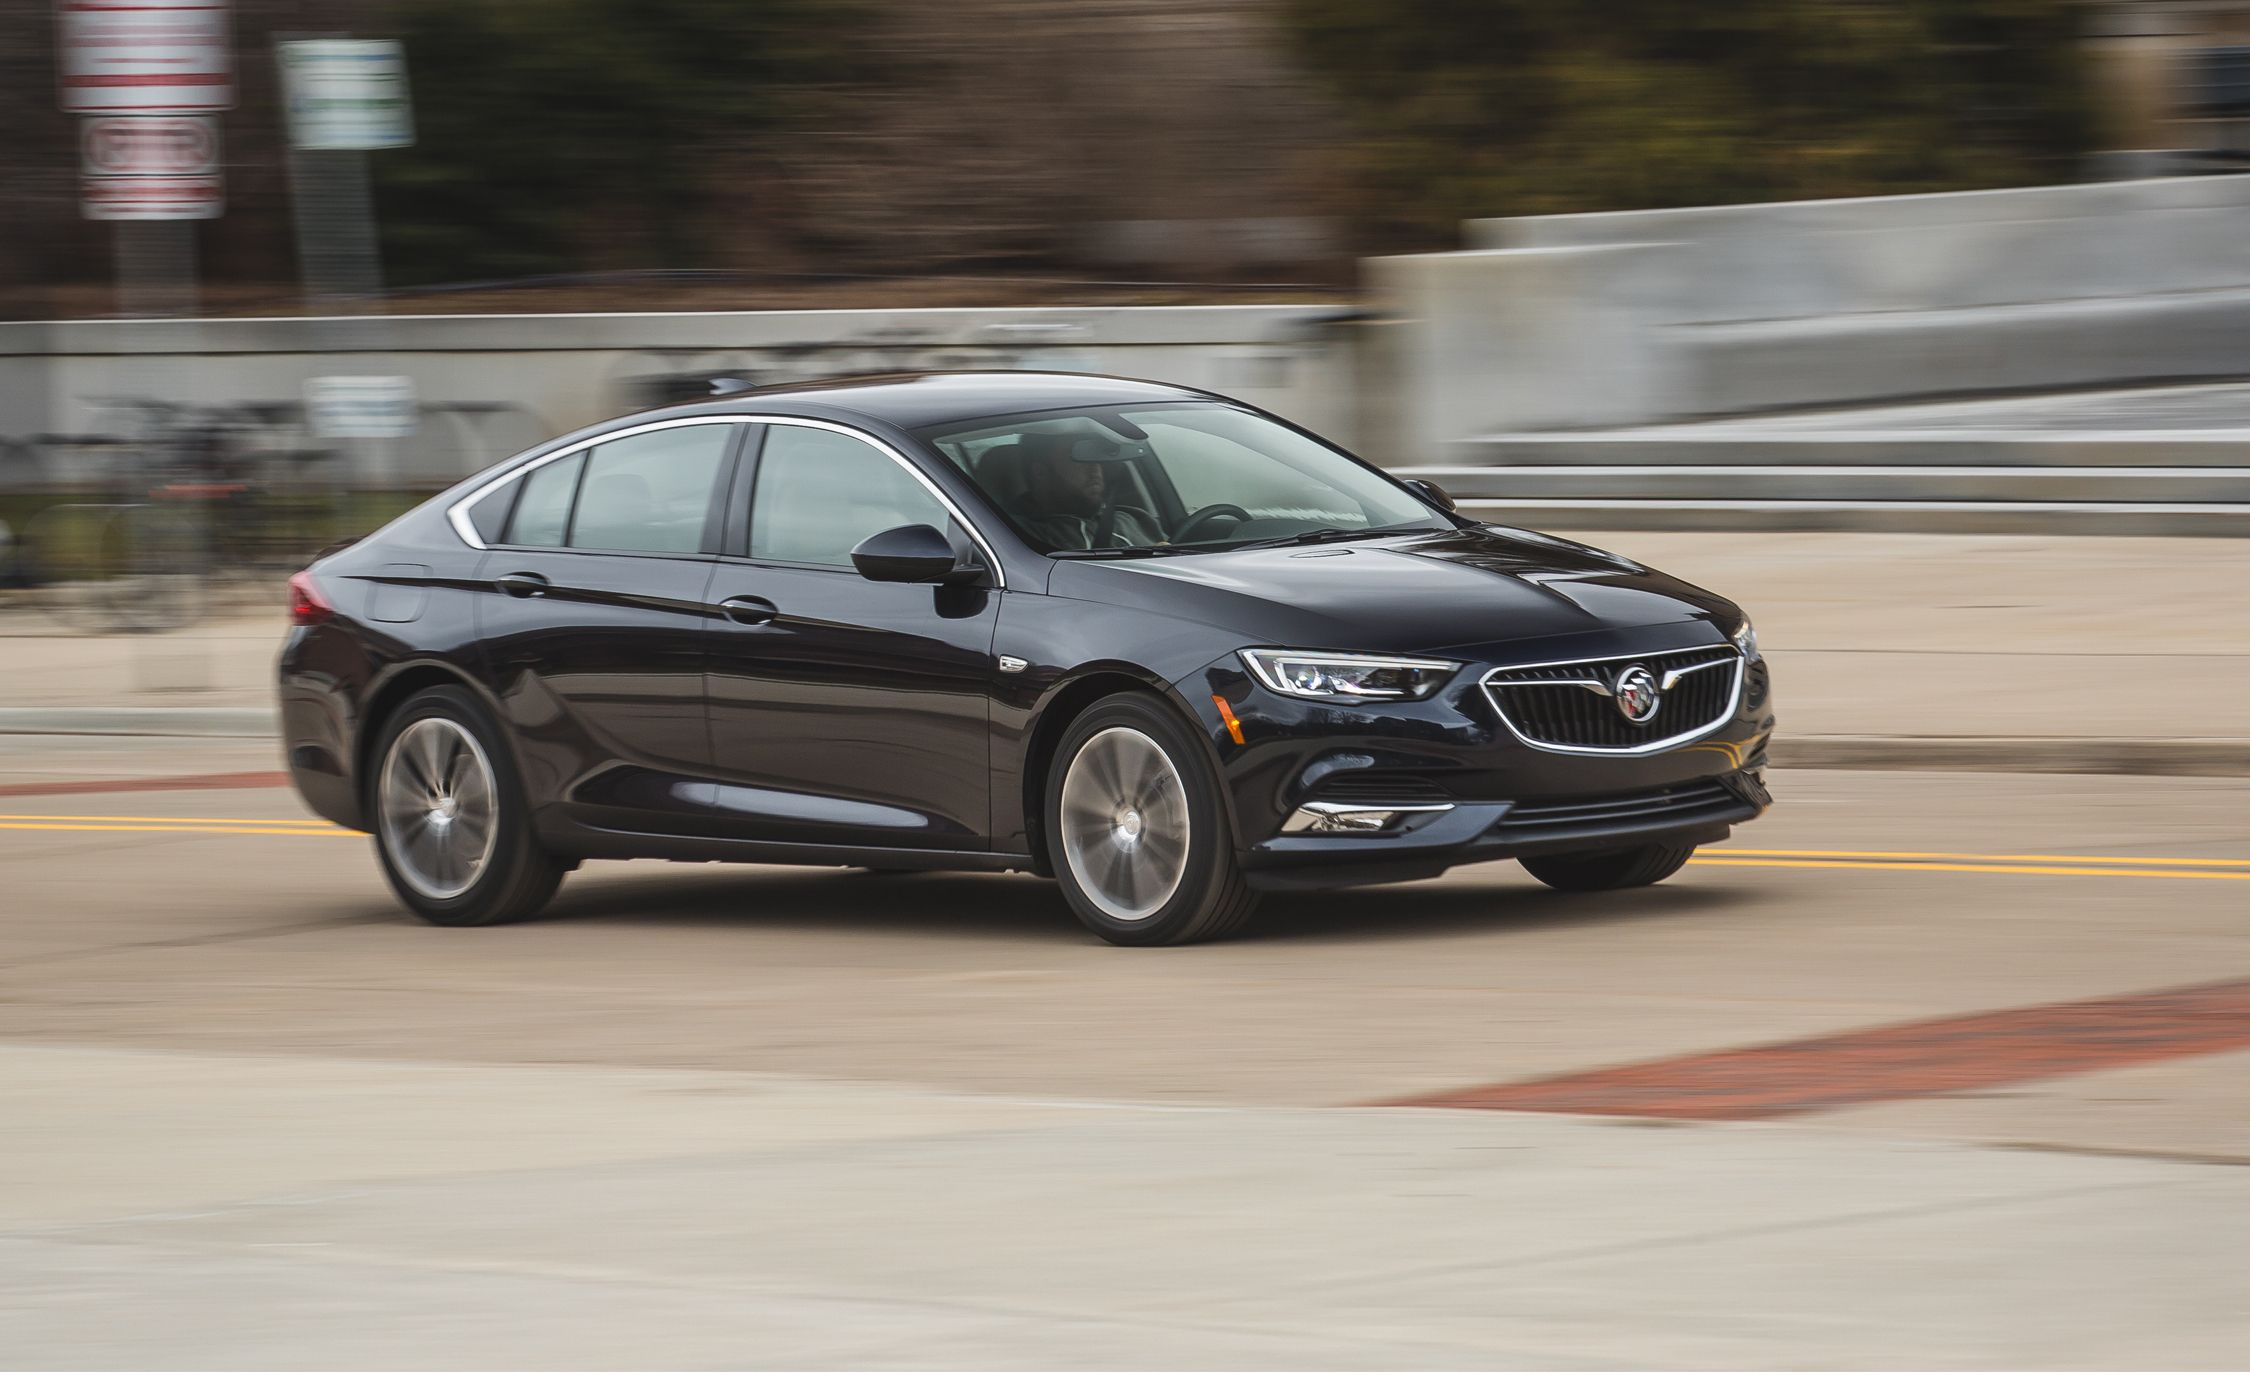 2018 Buick Regal Sportback Fwd Test | Review | Car And Driver 2021 Buick Regal Lease, Length, Trim Levels